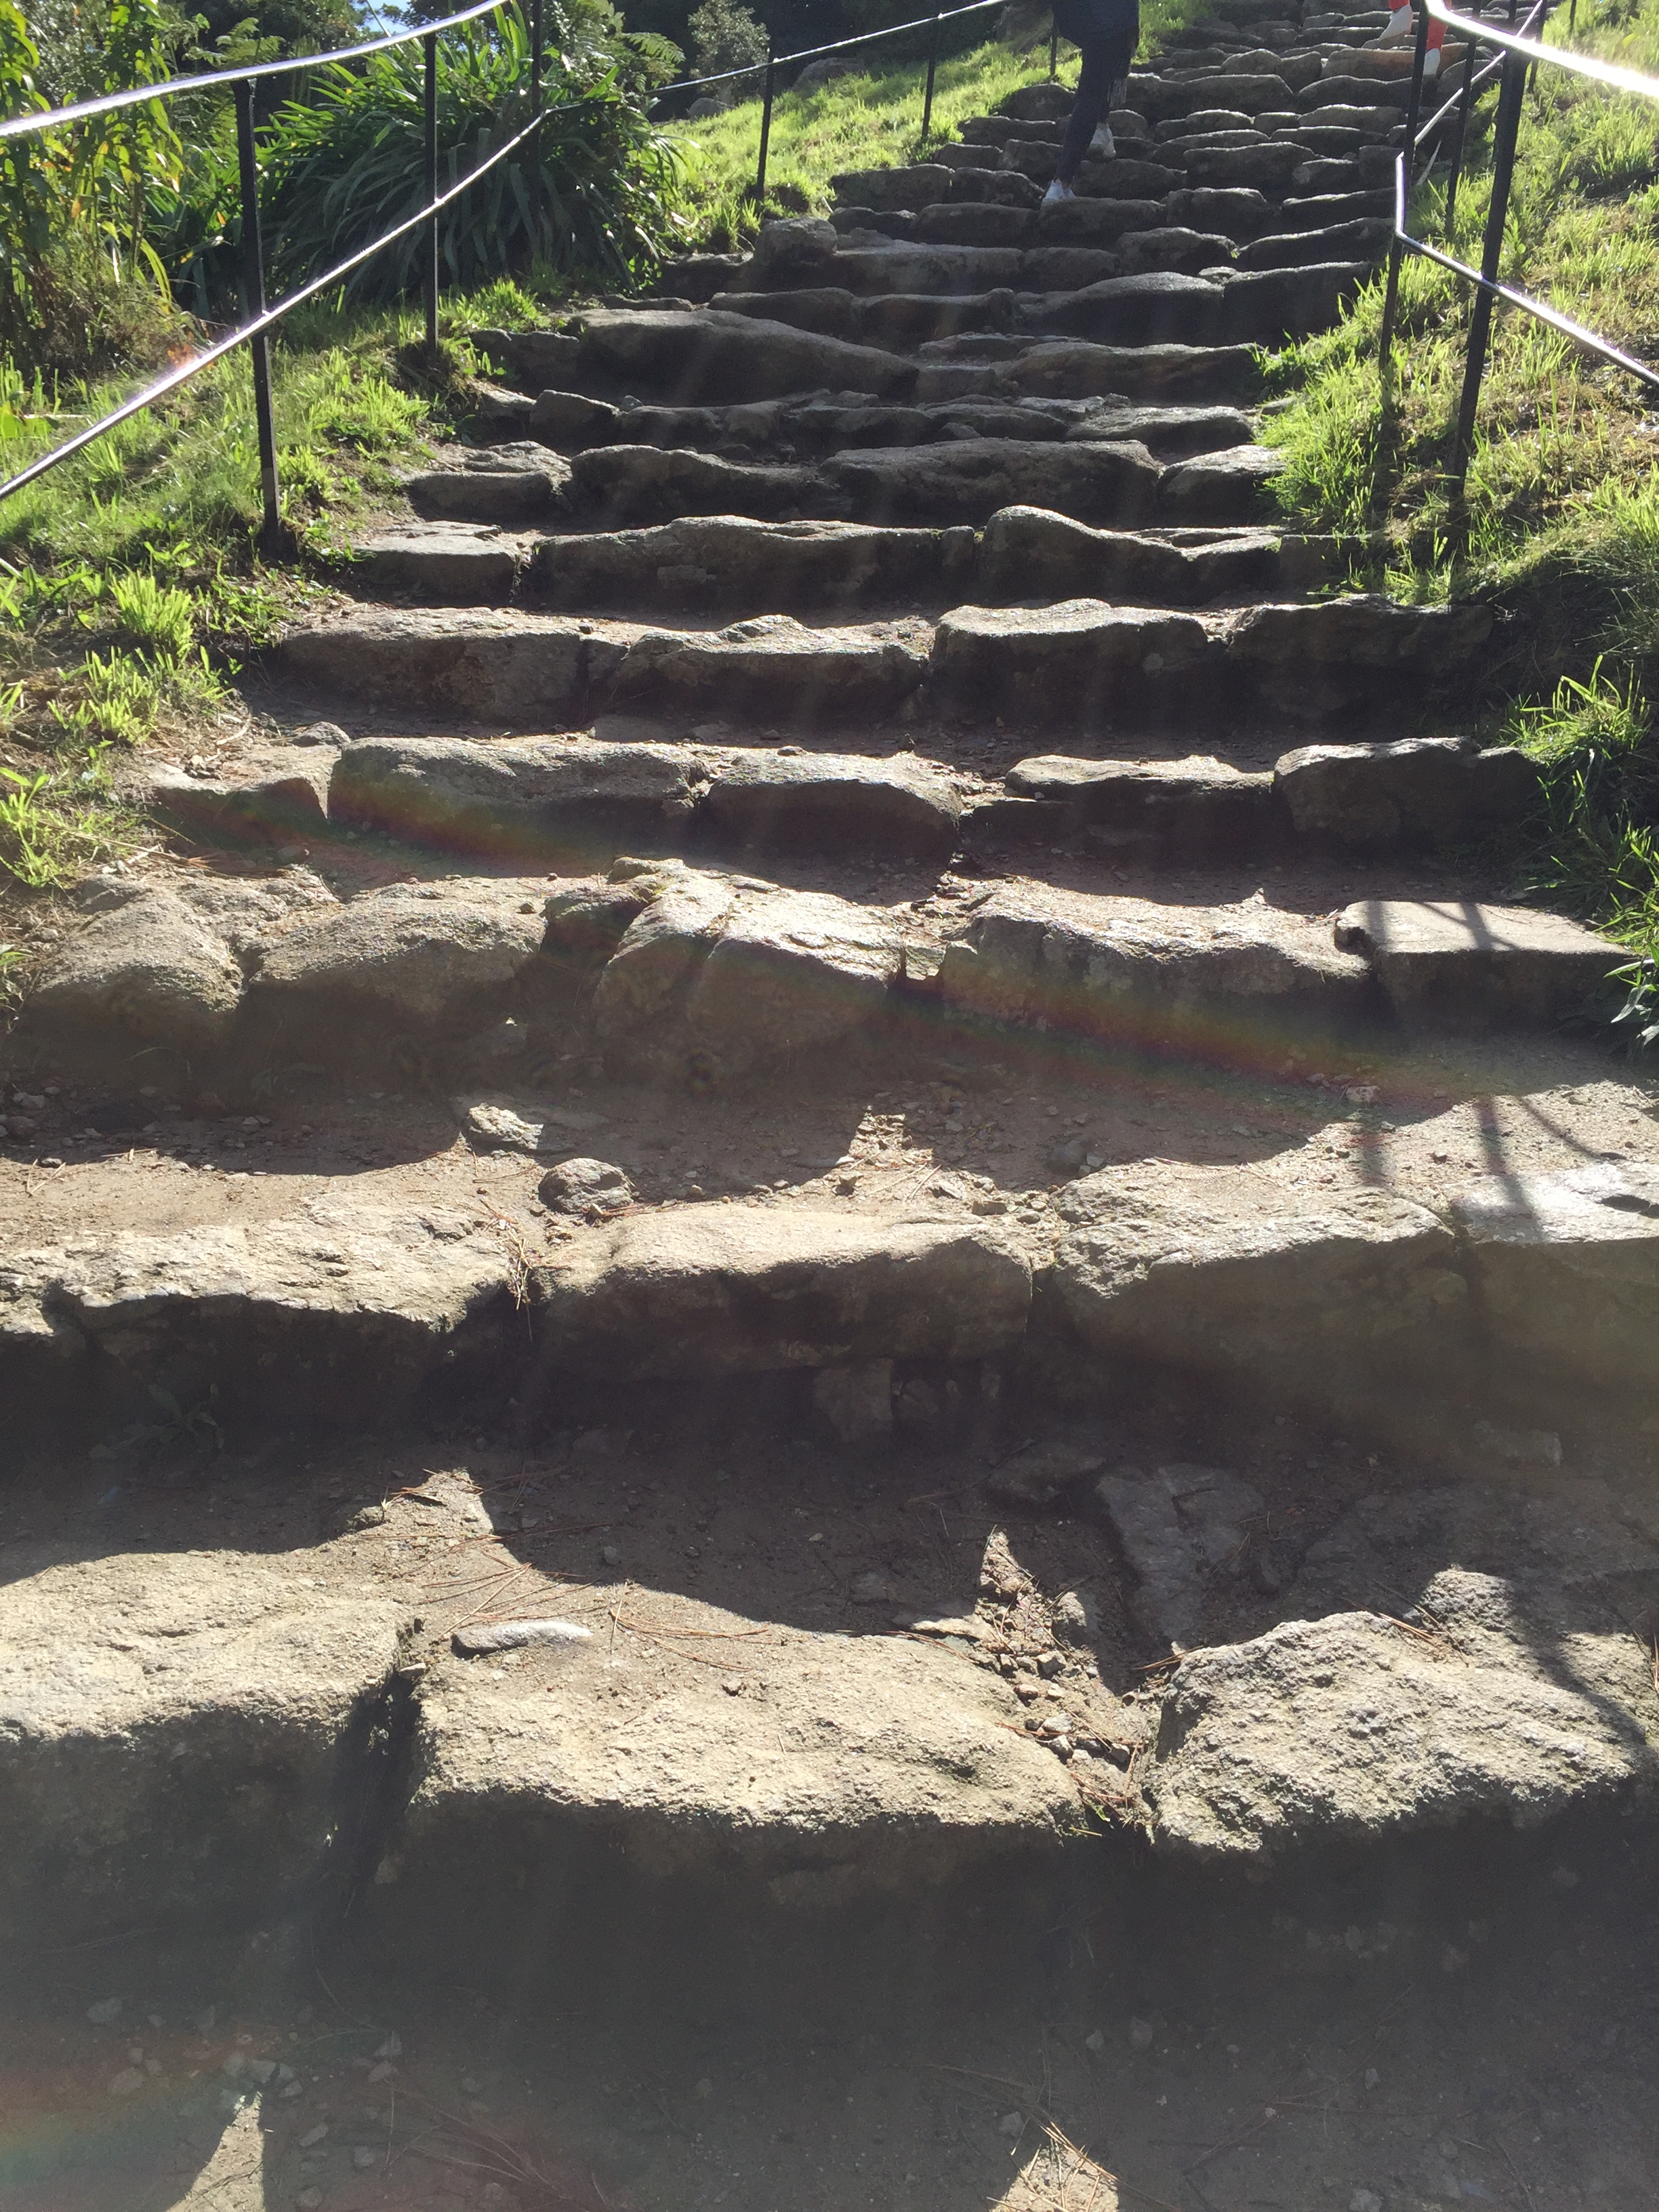 Medieval steps. Photo: Cathy Hanson